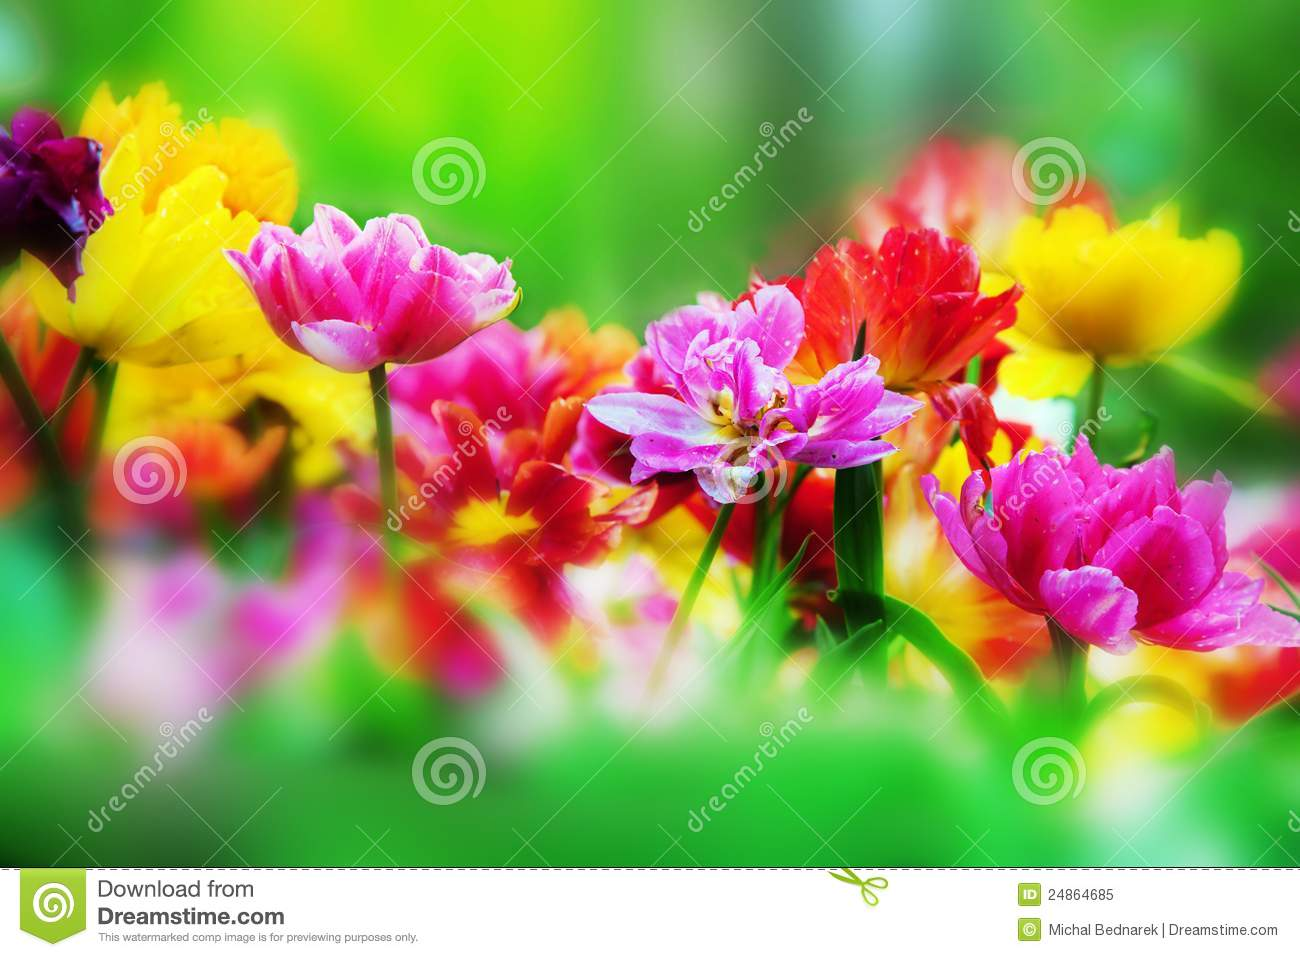 Colorful Flowers In Spring Garden Stock Image - Image of copyspace ...